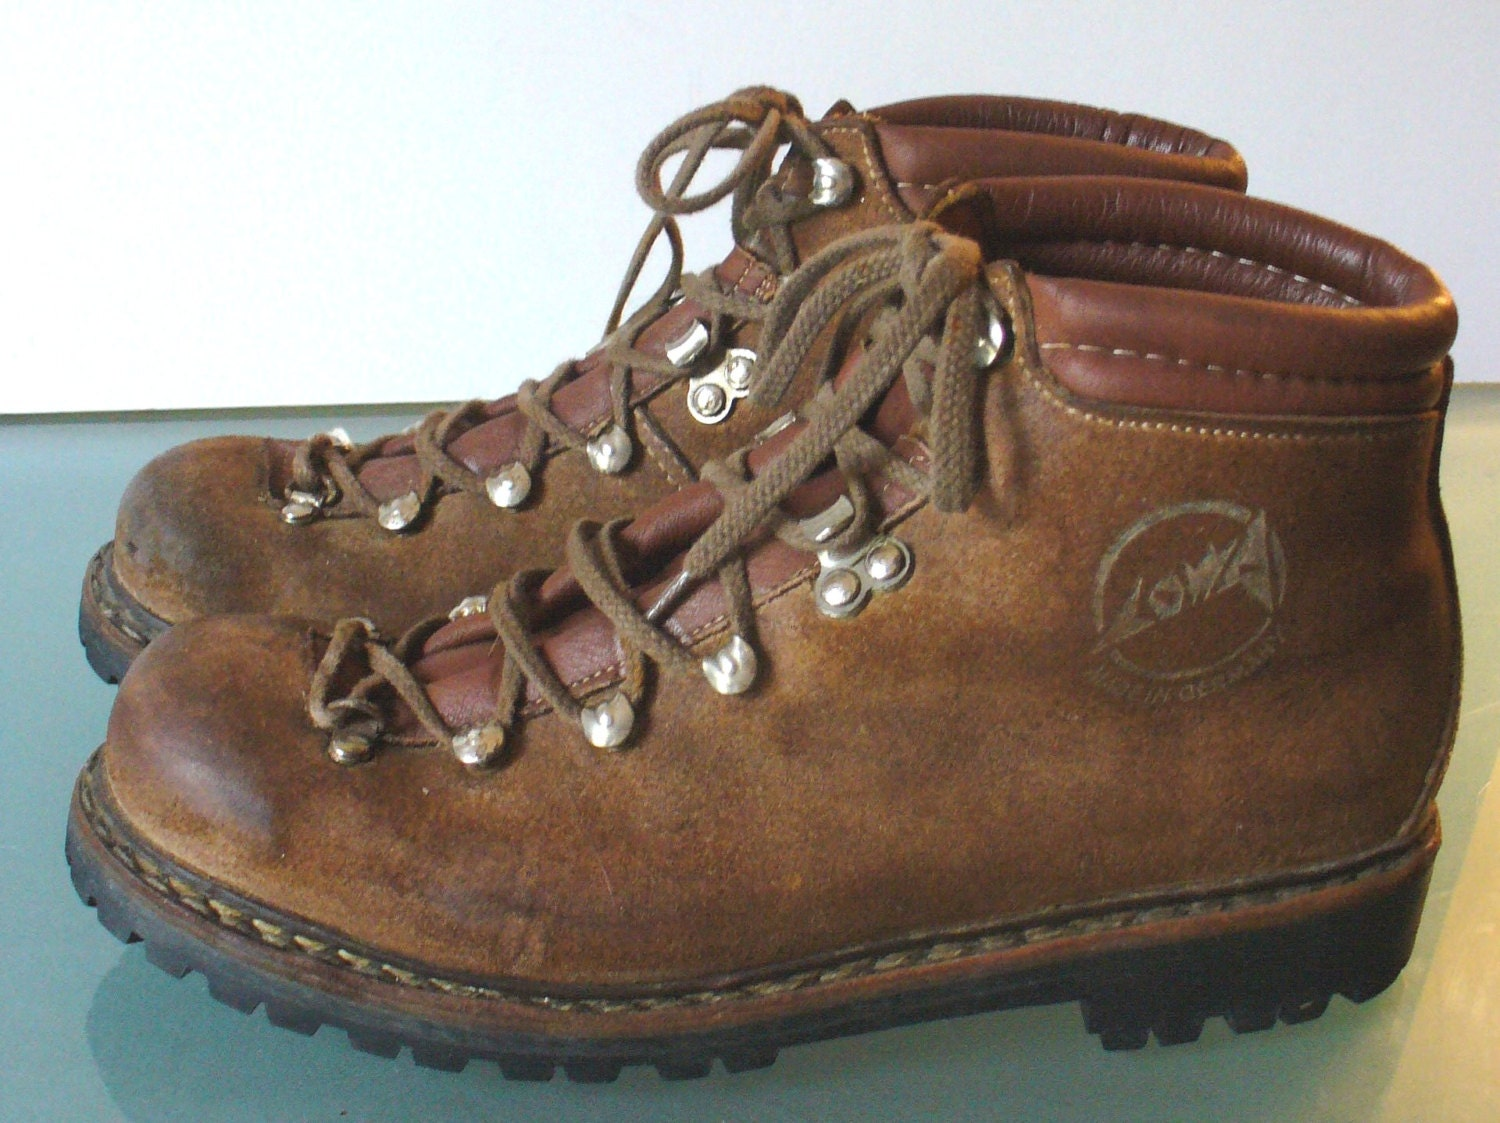 Vintage Made In Germany Lowa Hiking Boots